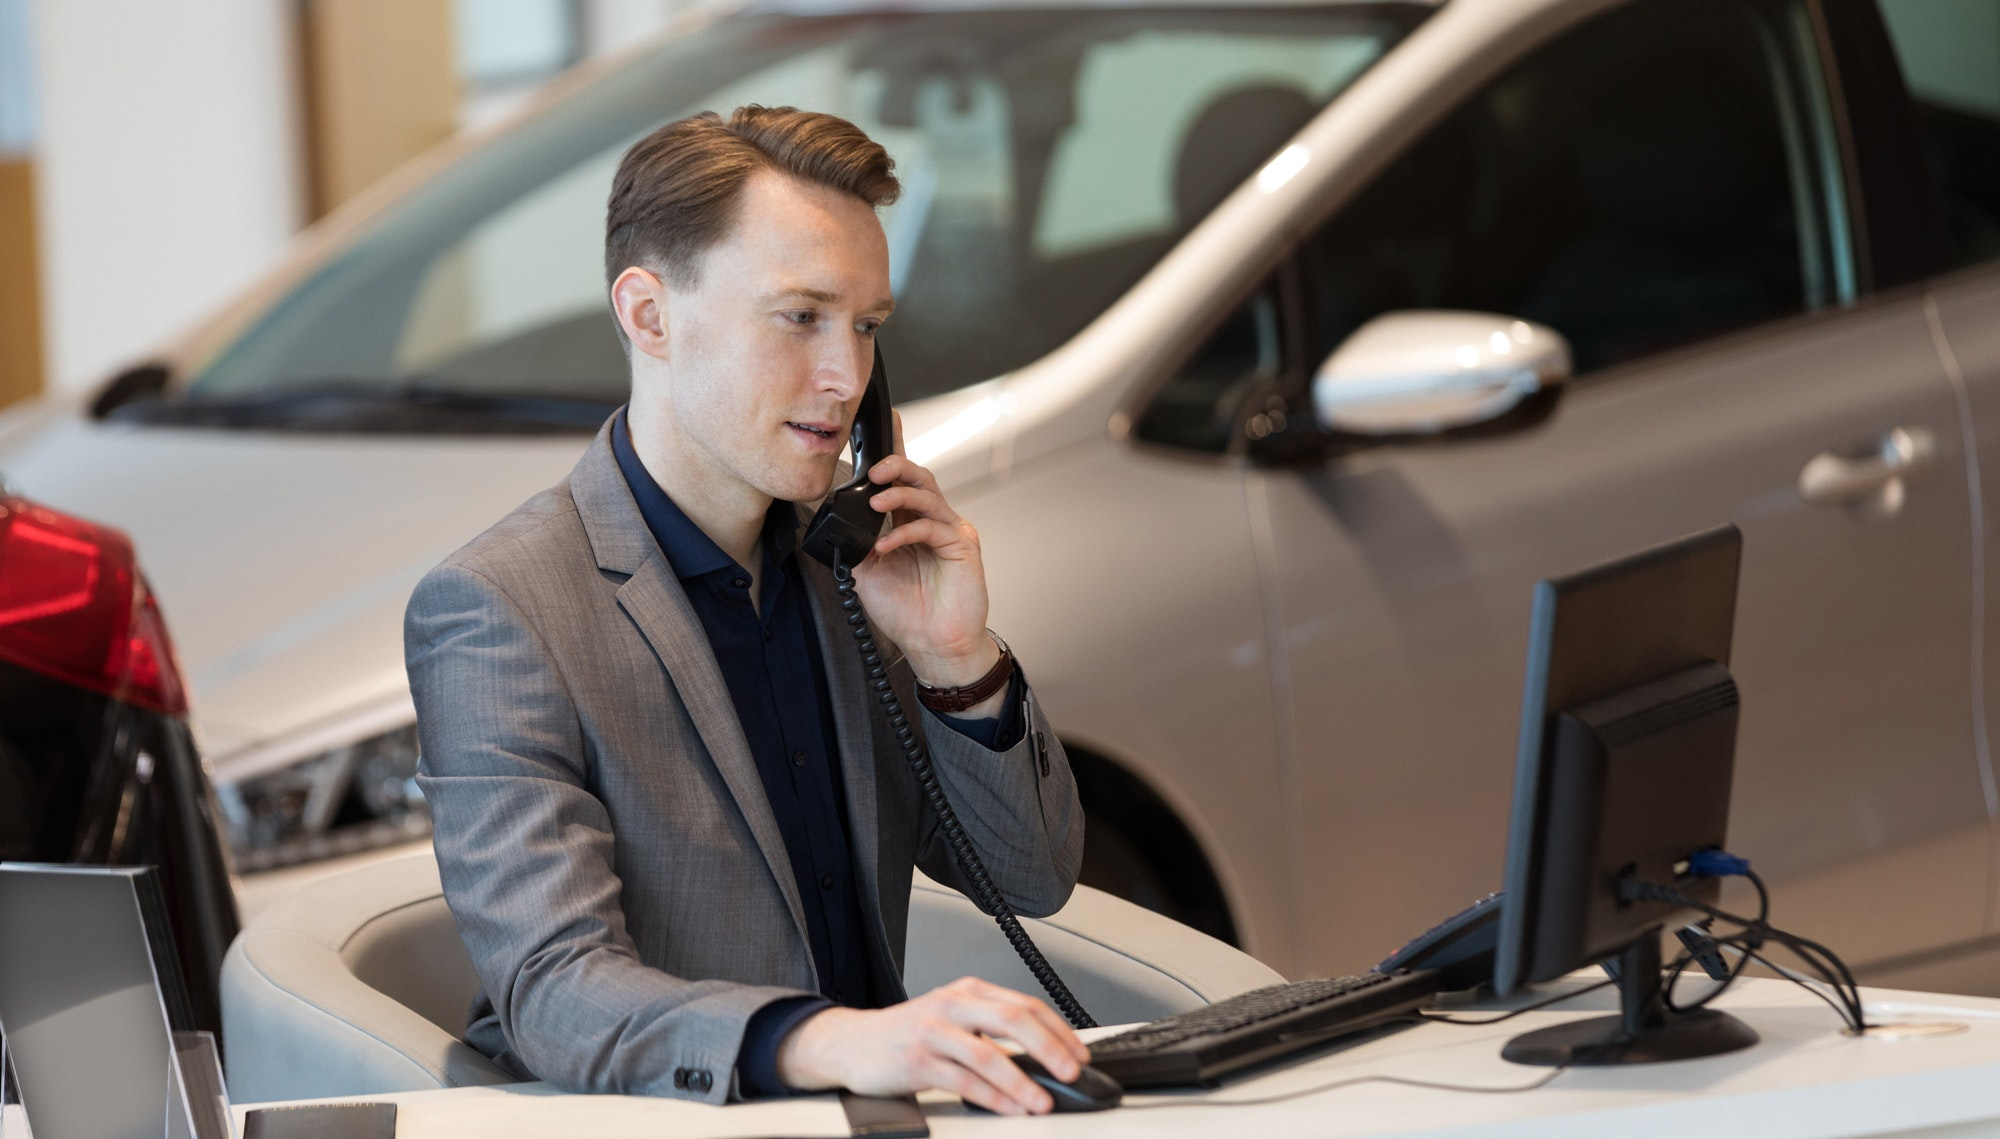 Sales talking on phone while using computer